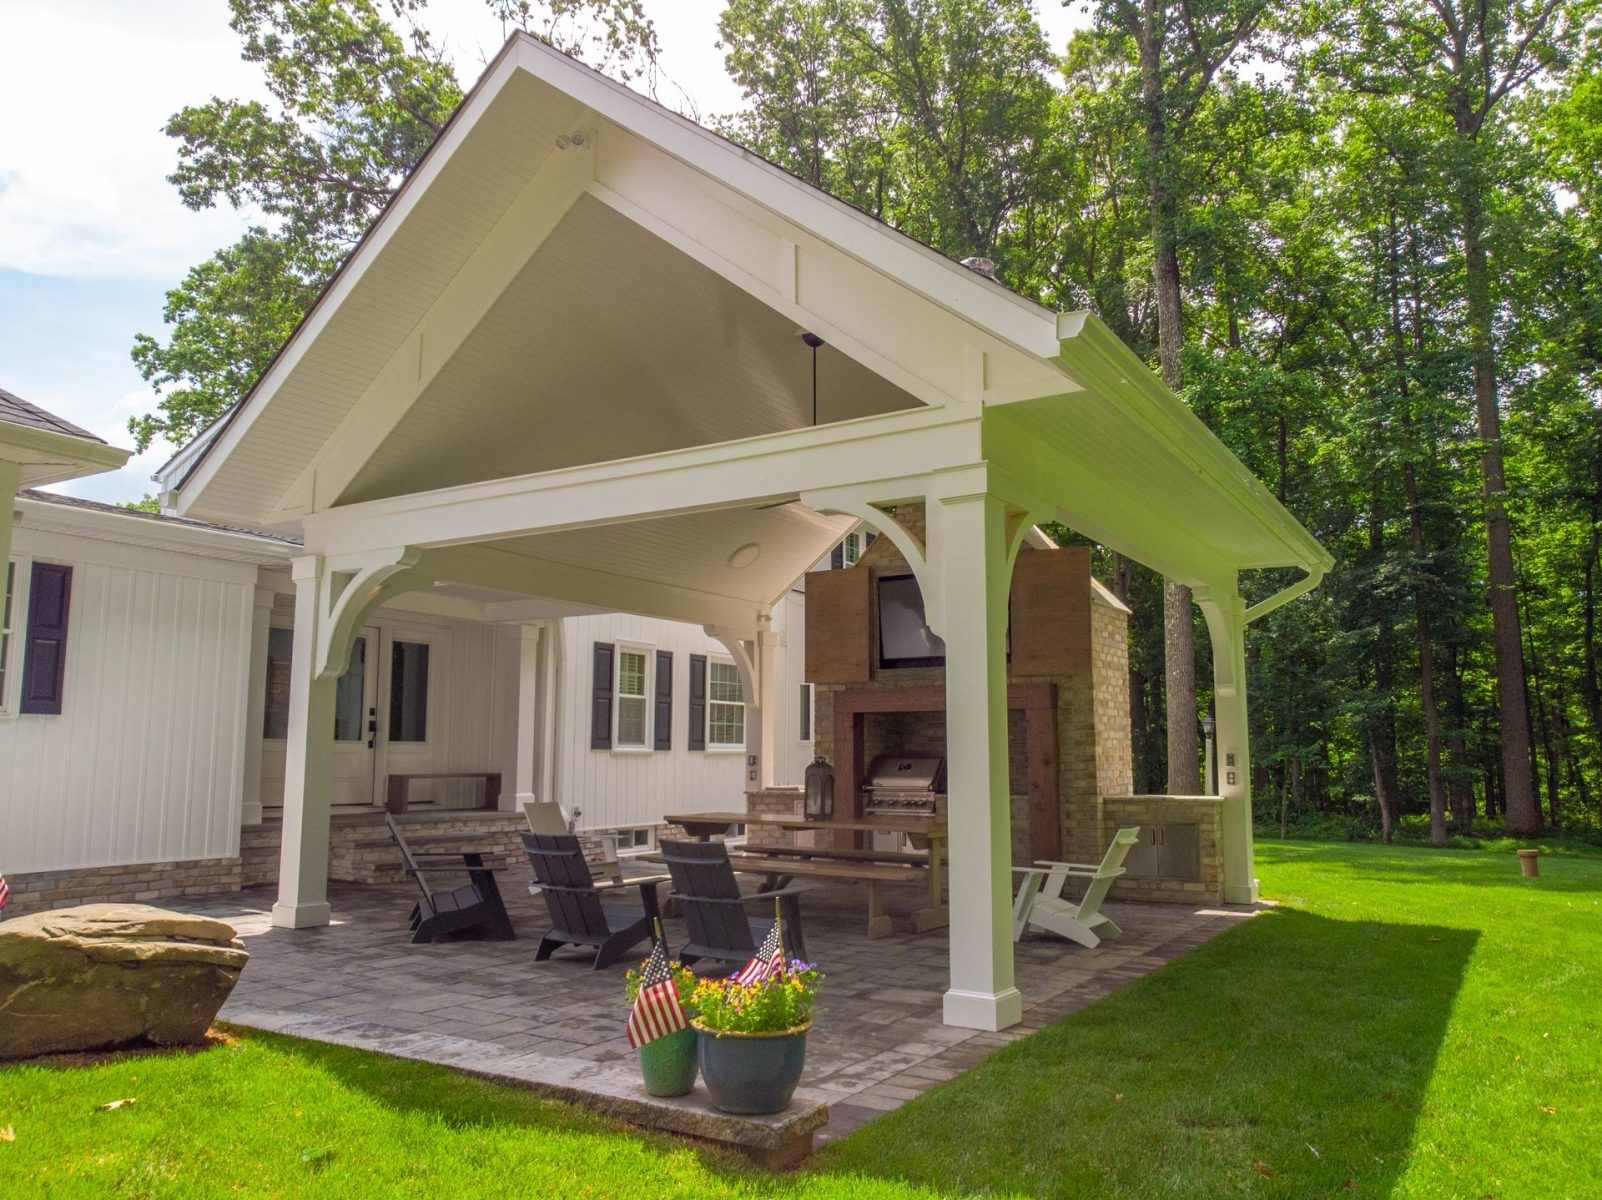 Outdoor Patio Design Installation In Sykesville West | Outdoor Steps Design For House | Deck | Beautiful | Unique Outdoor | Brick | Farm House Wide Front Porch